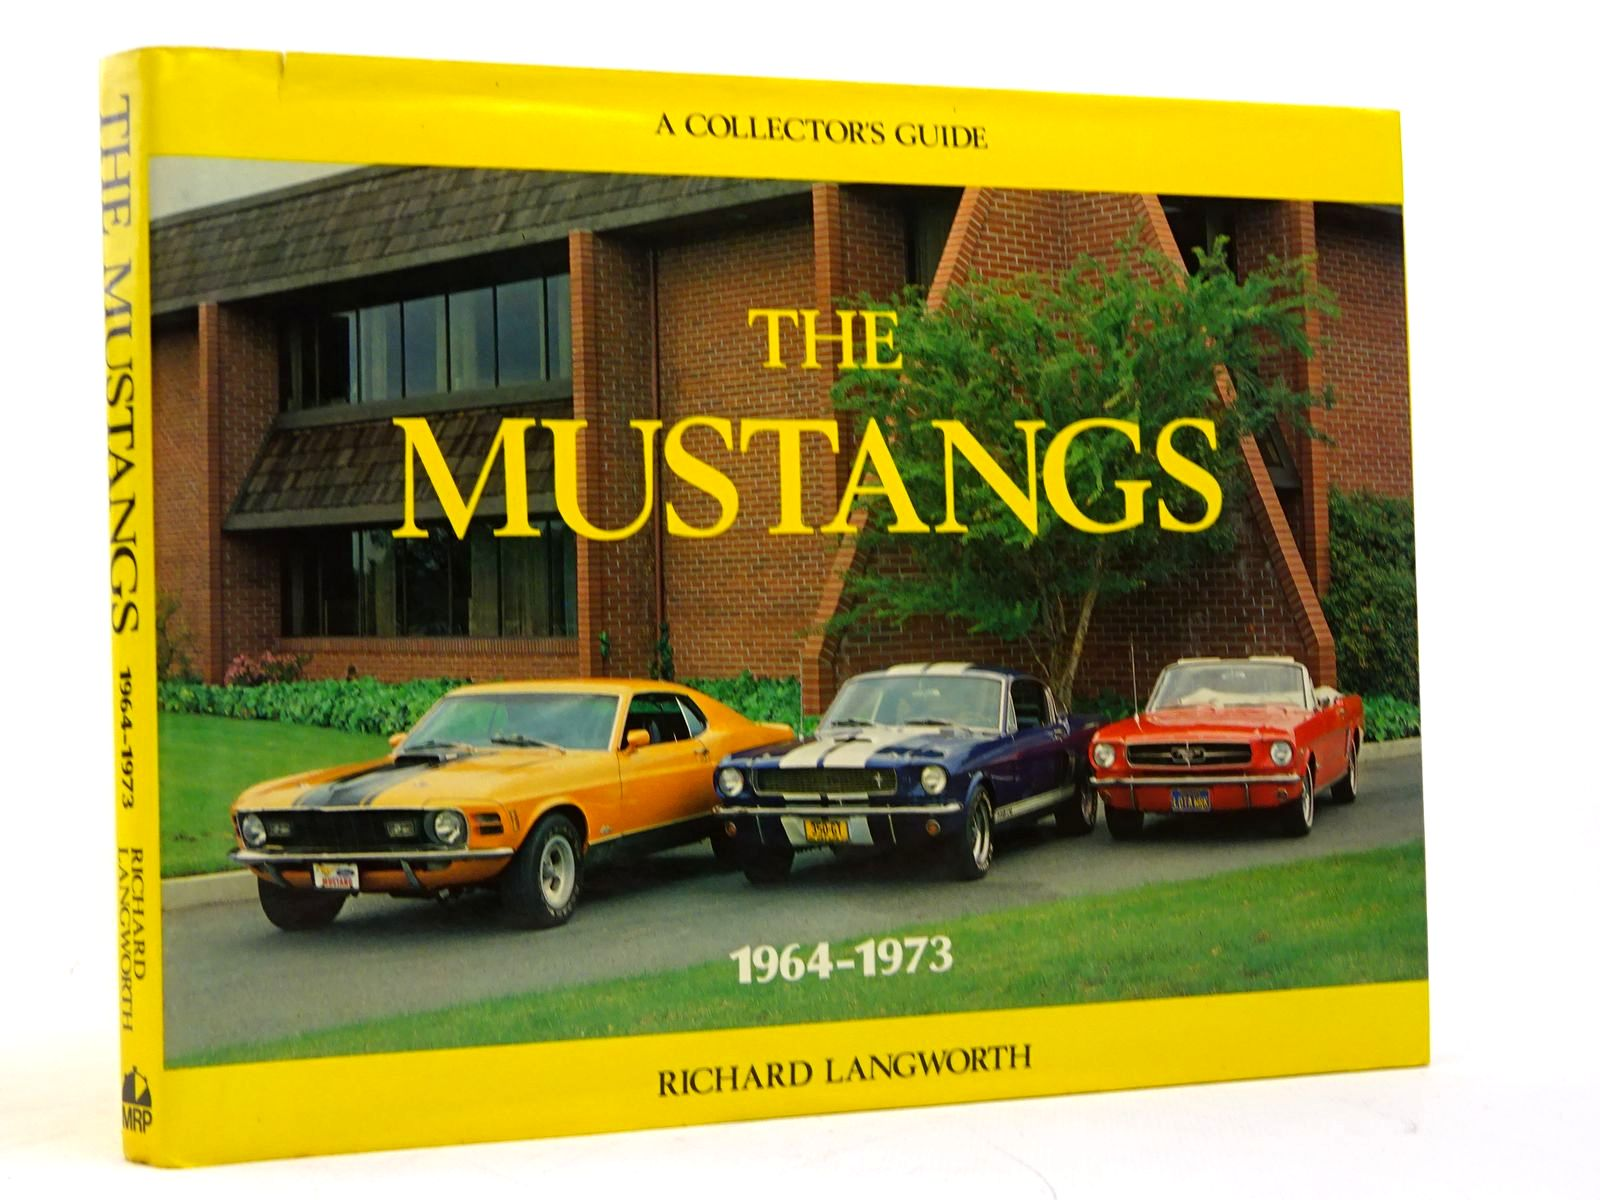 Photo of THE MUSTANGS 1964-1973 (A COLLECTOR'S GUIDE)- Stock Number: 1817966